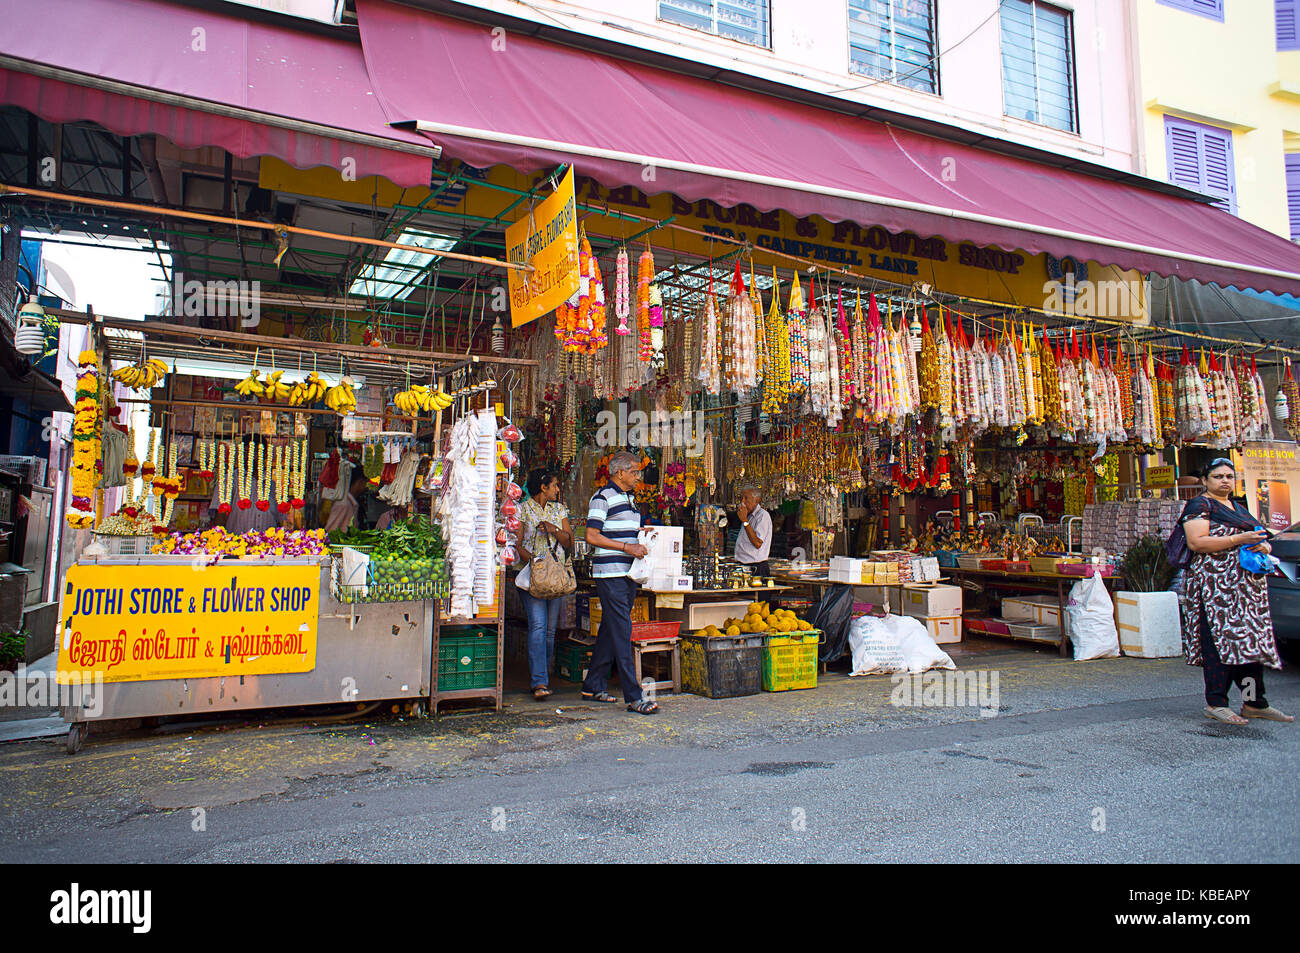 Row of shops in Little India, centre of the city's large Indian community and one of its most vibrant districts. Stock Photo